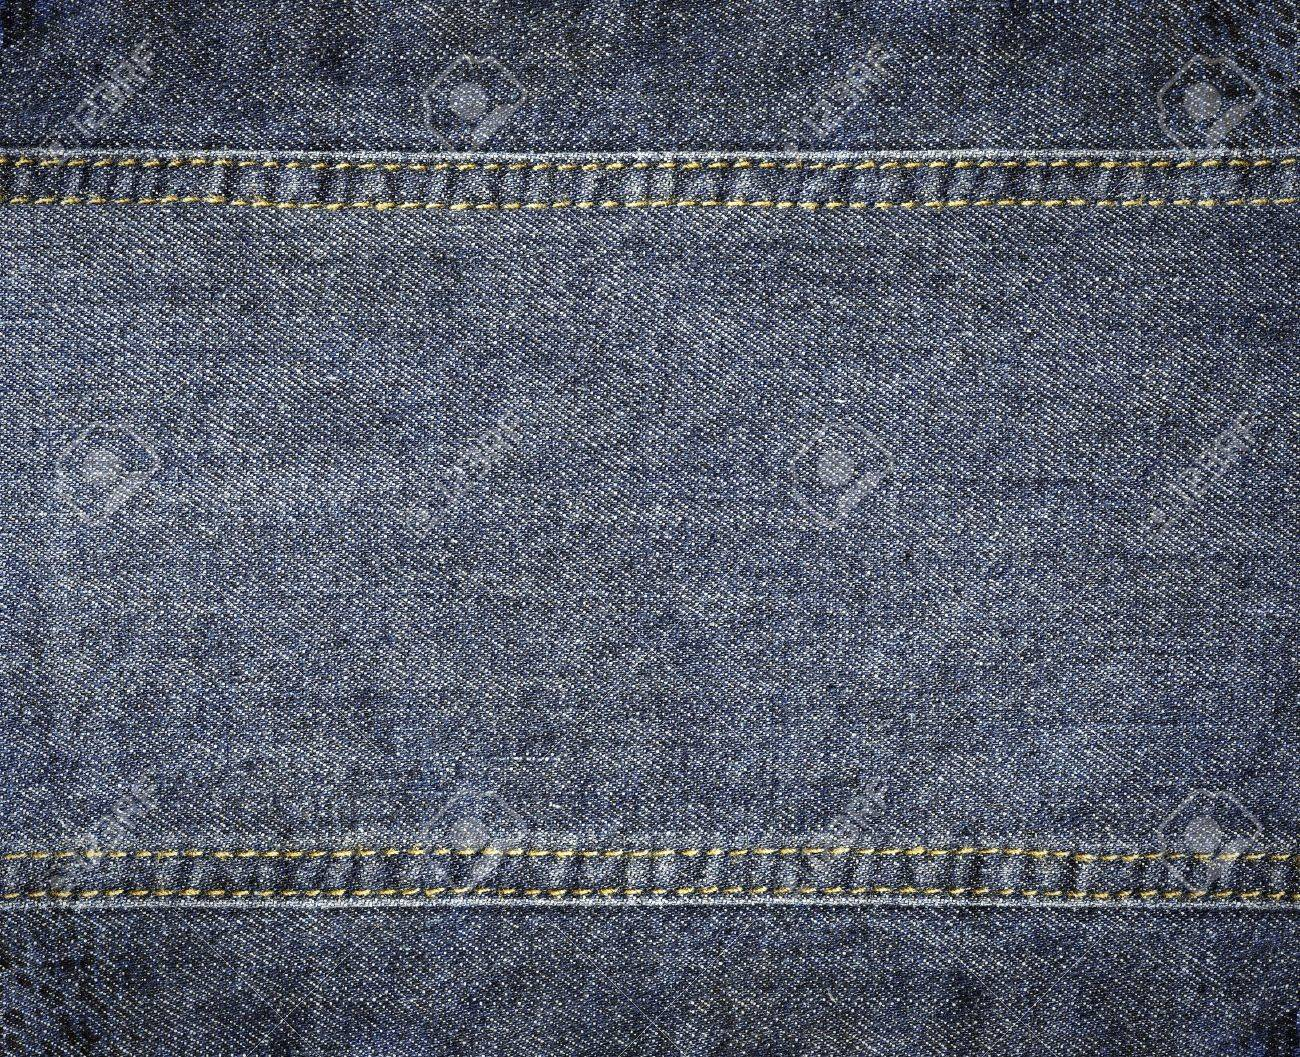 f24c1321dd52 Highly detailed worn denim texture - abstract dirty blue jeans background  with double thread s seam Stock